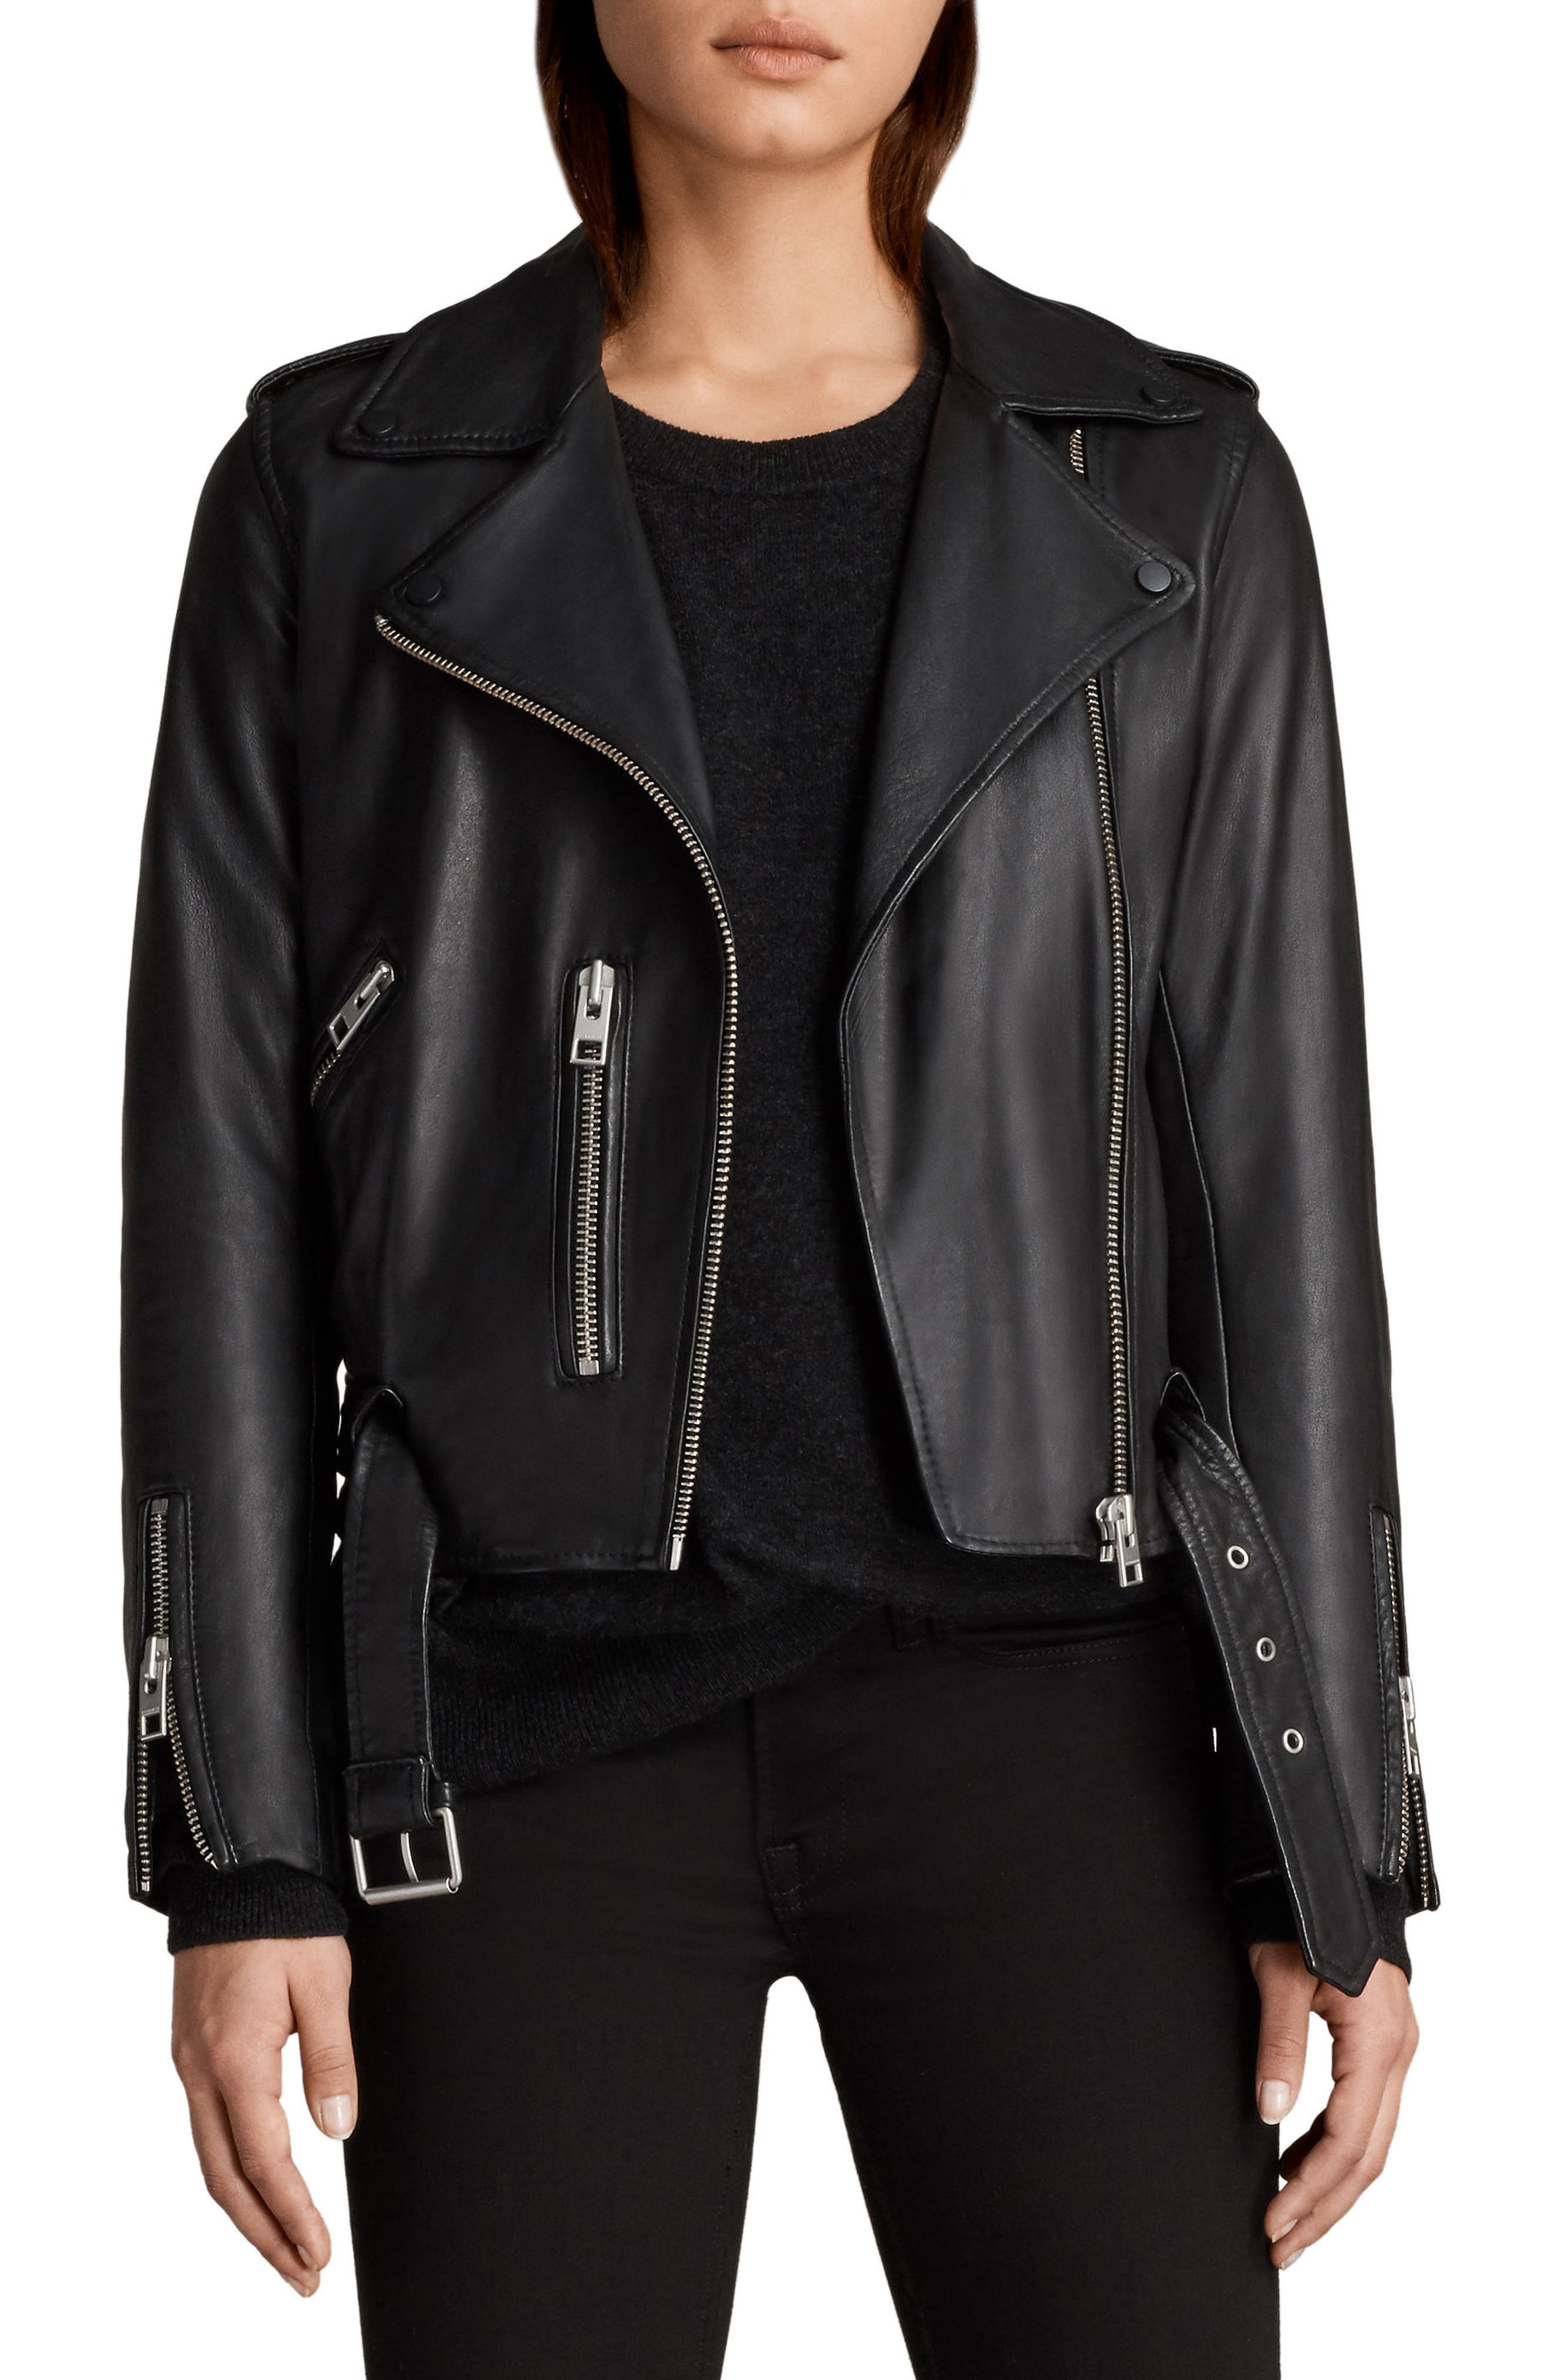 Balfern Leather Biker Jacket,                         Main,                         color, Black